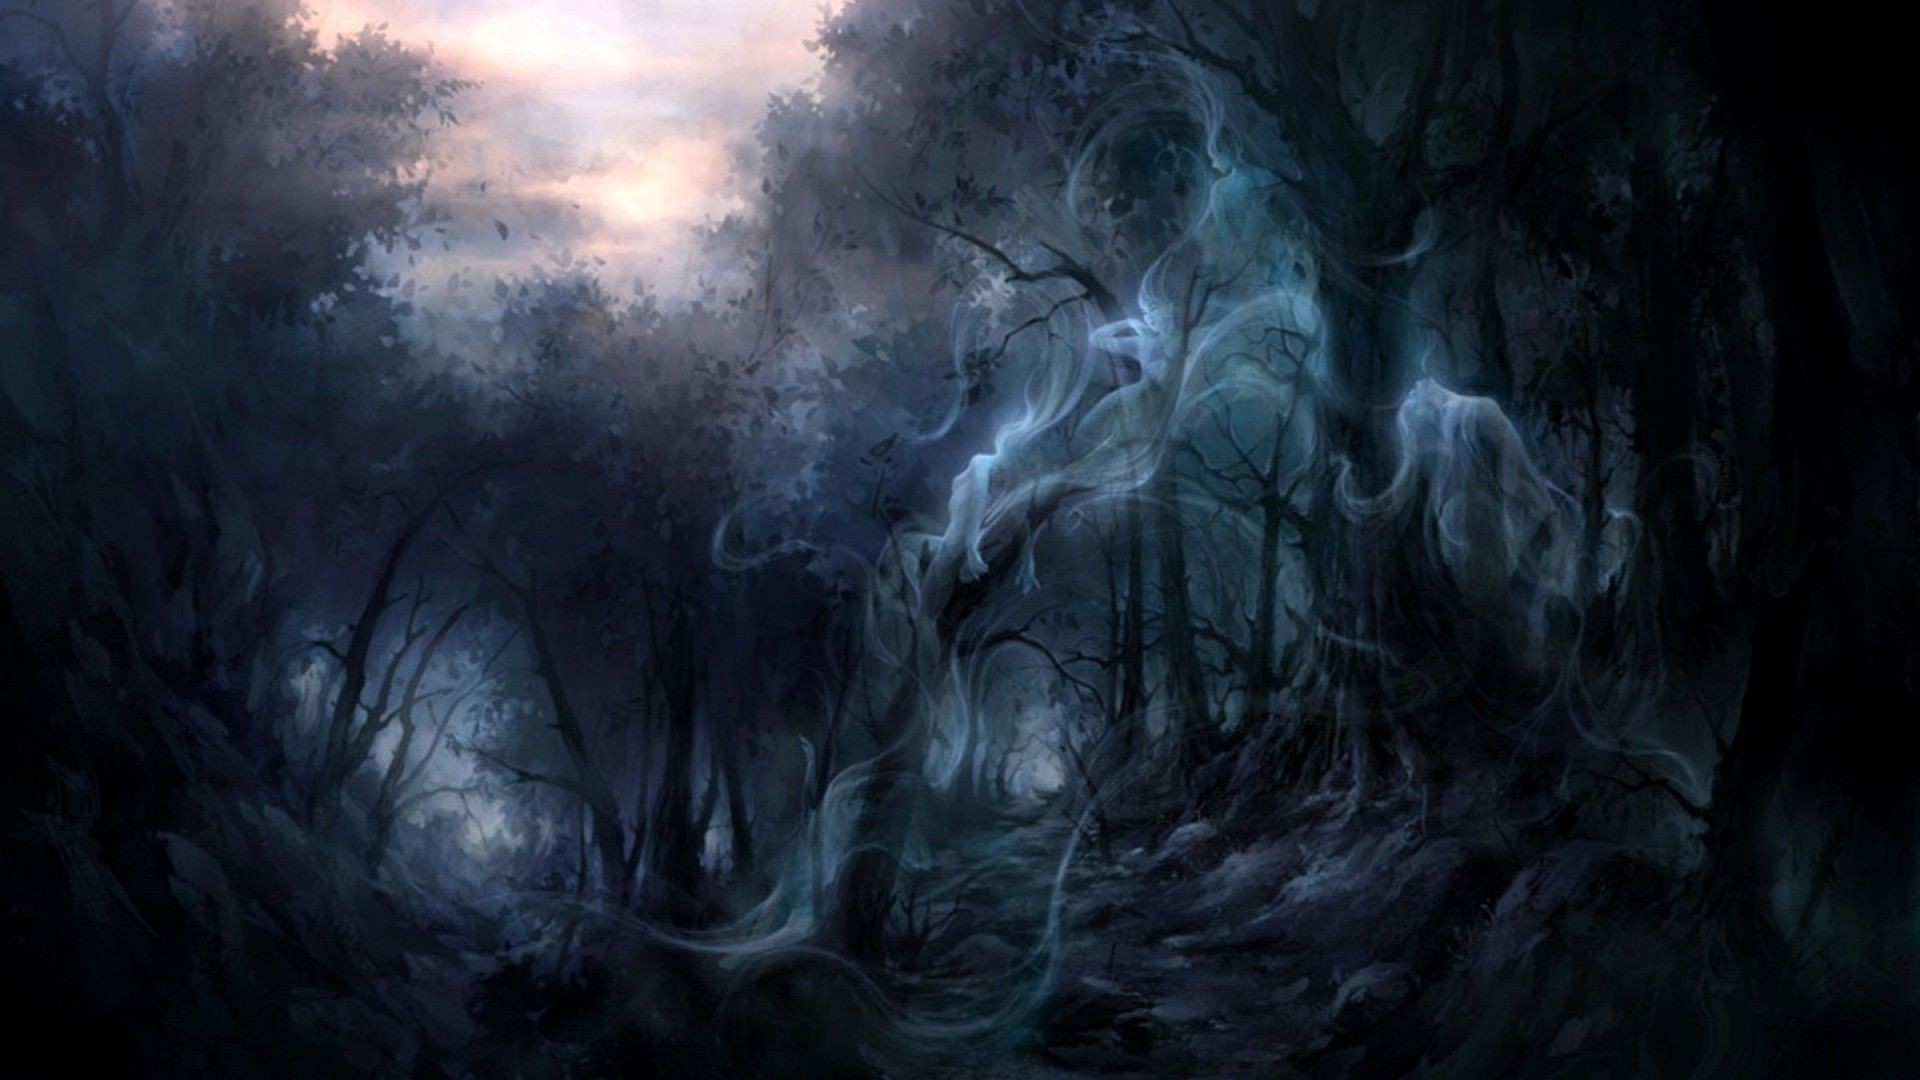 Creepy forest wallpaper